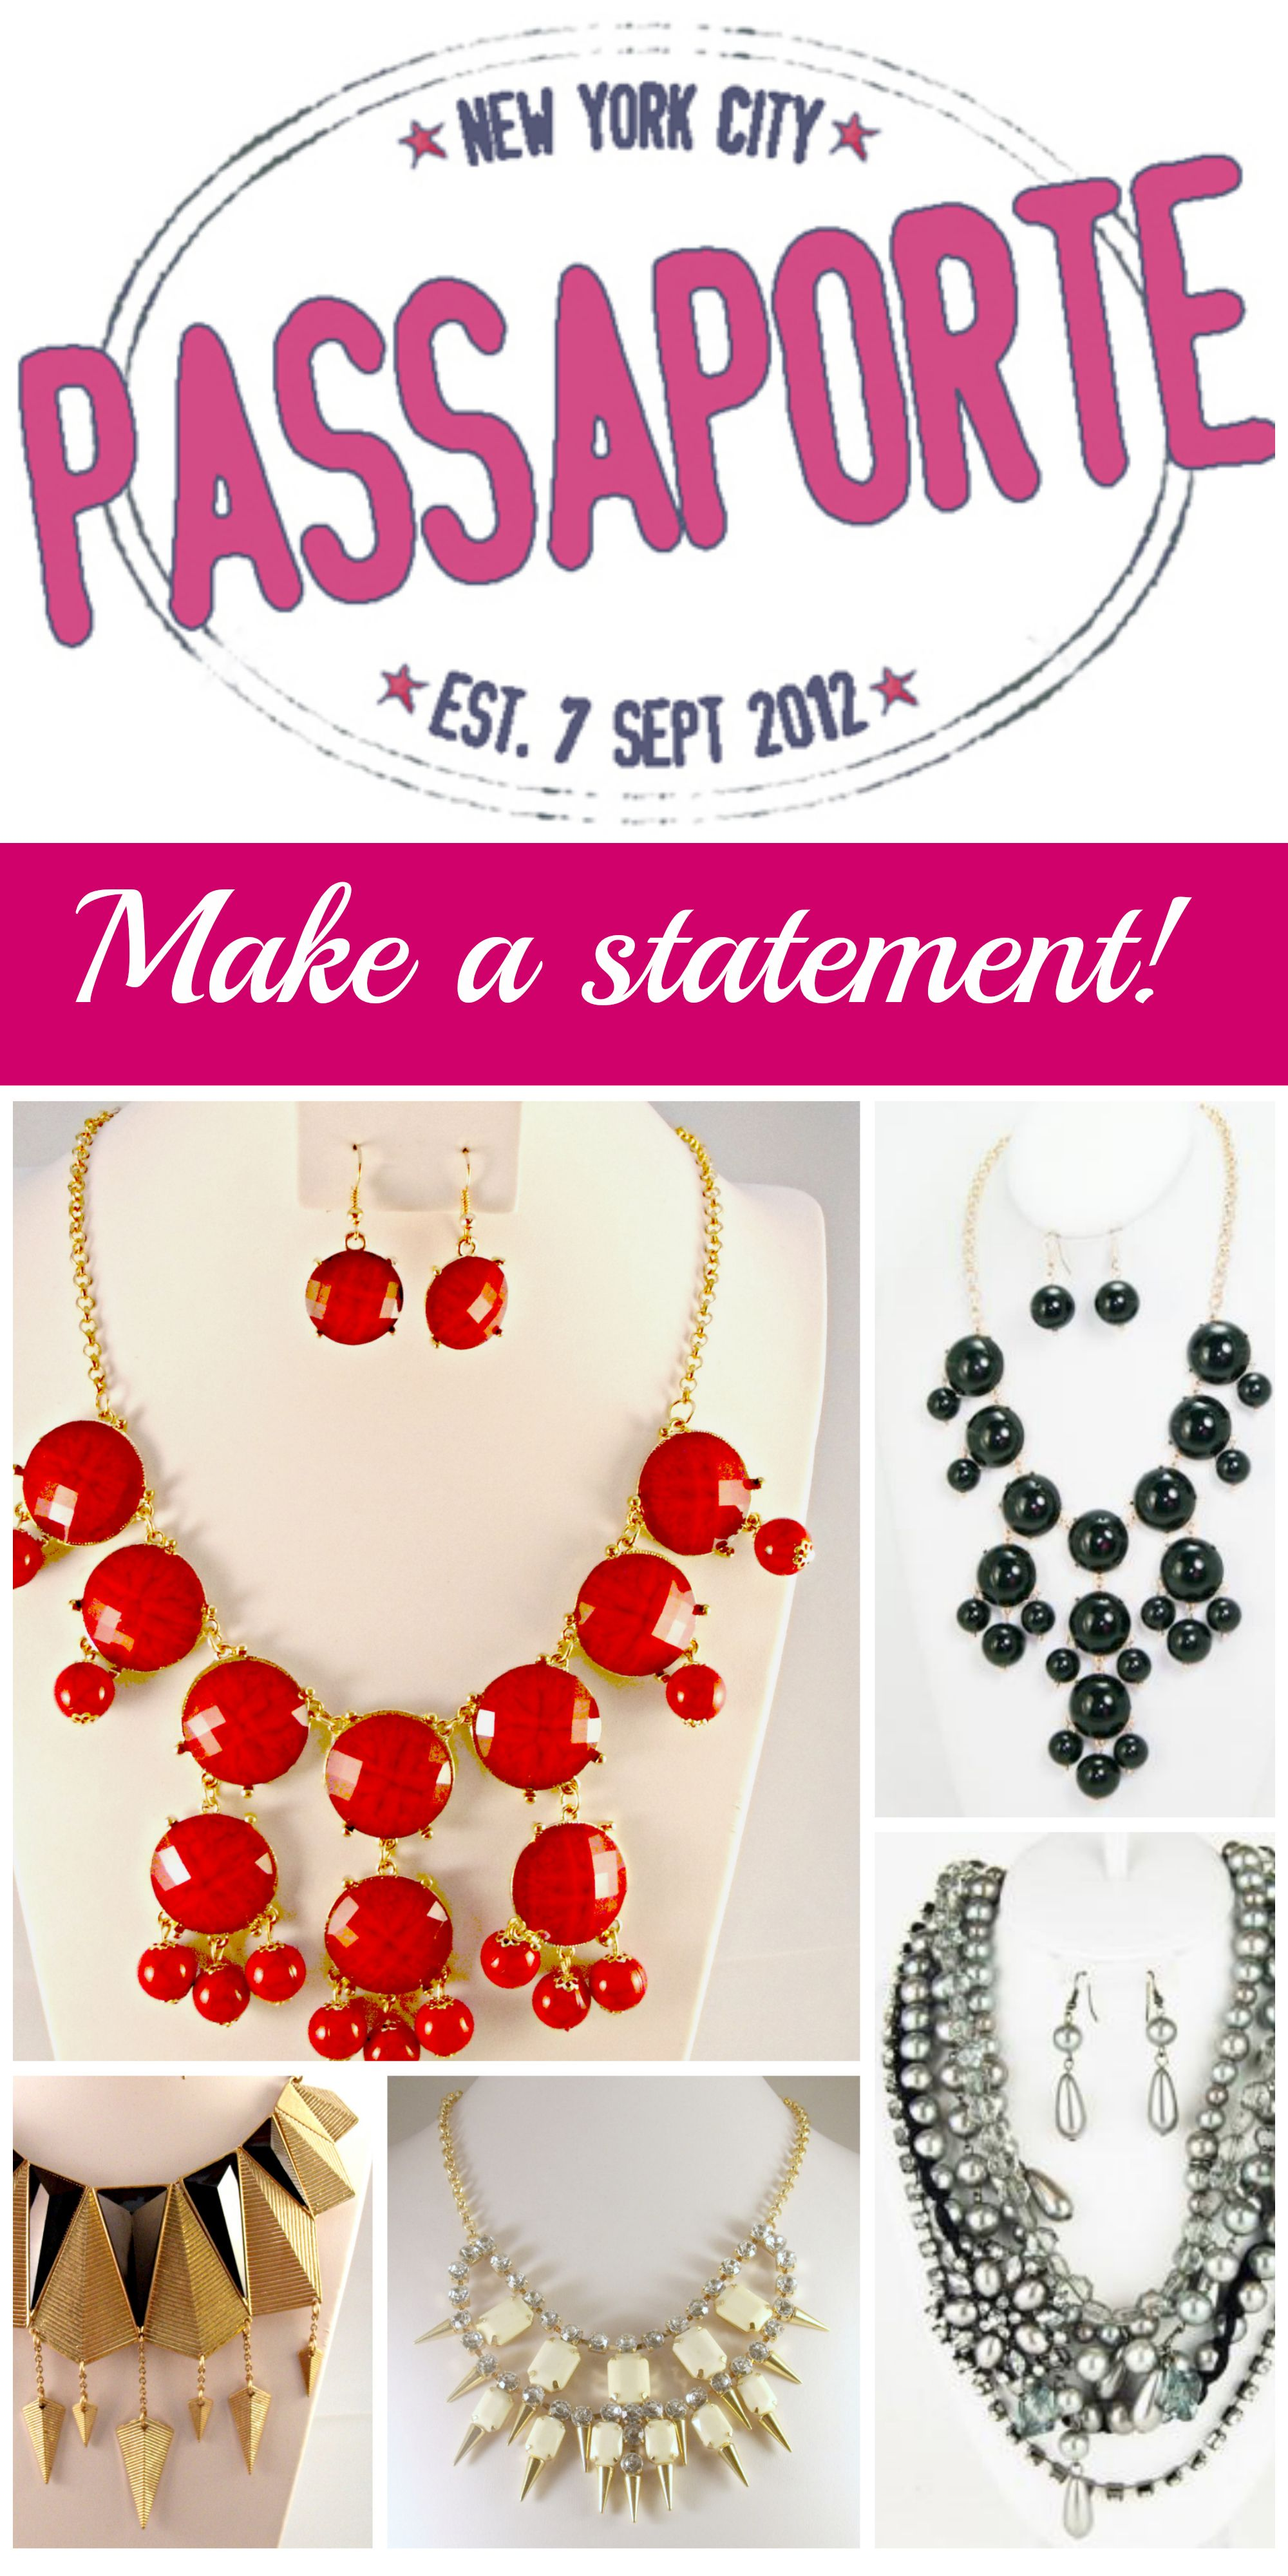 Must Repin! Make a statement with necklaces from ShopPassaporte.com  #Necklace #StatementNecklace #Jewelry #FashionJewelry #Baubles